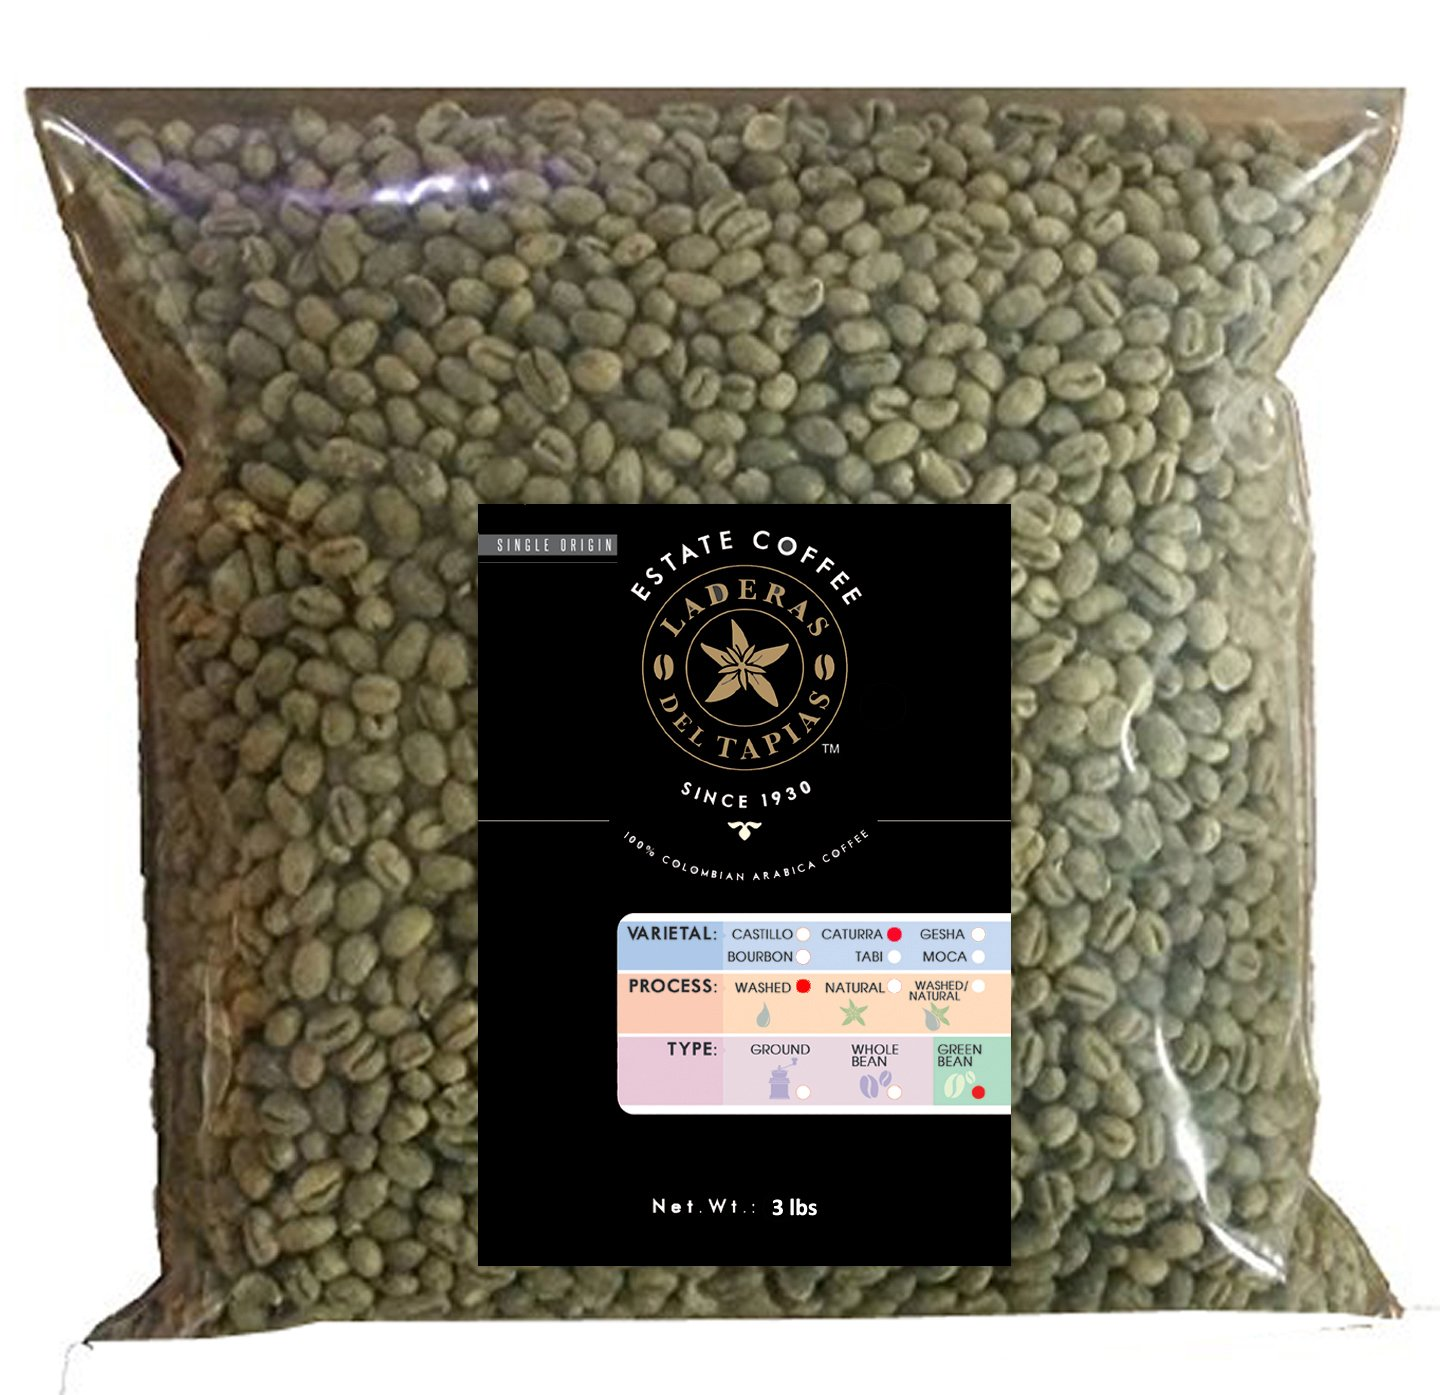 Premium Caturra Unroasted Beans 3 Lbs - Estate Laderas del Tapias Colombia Image